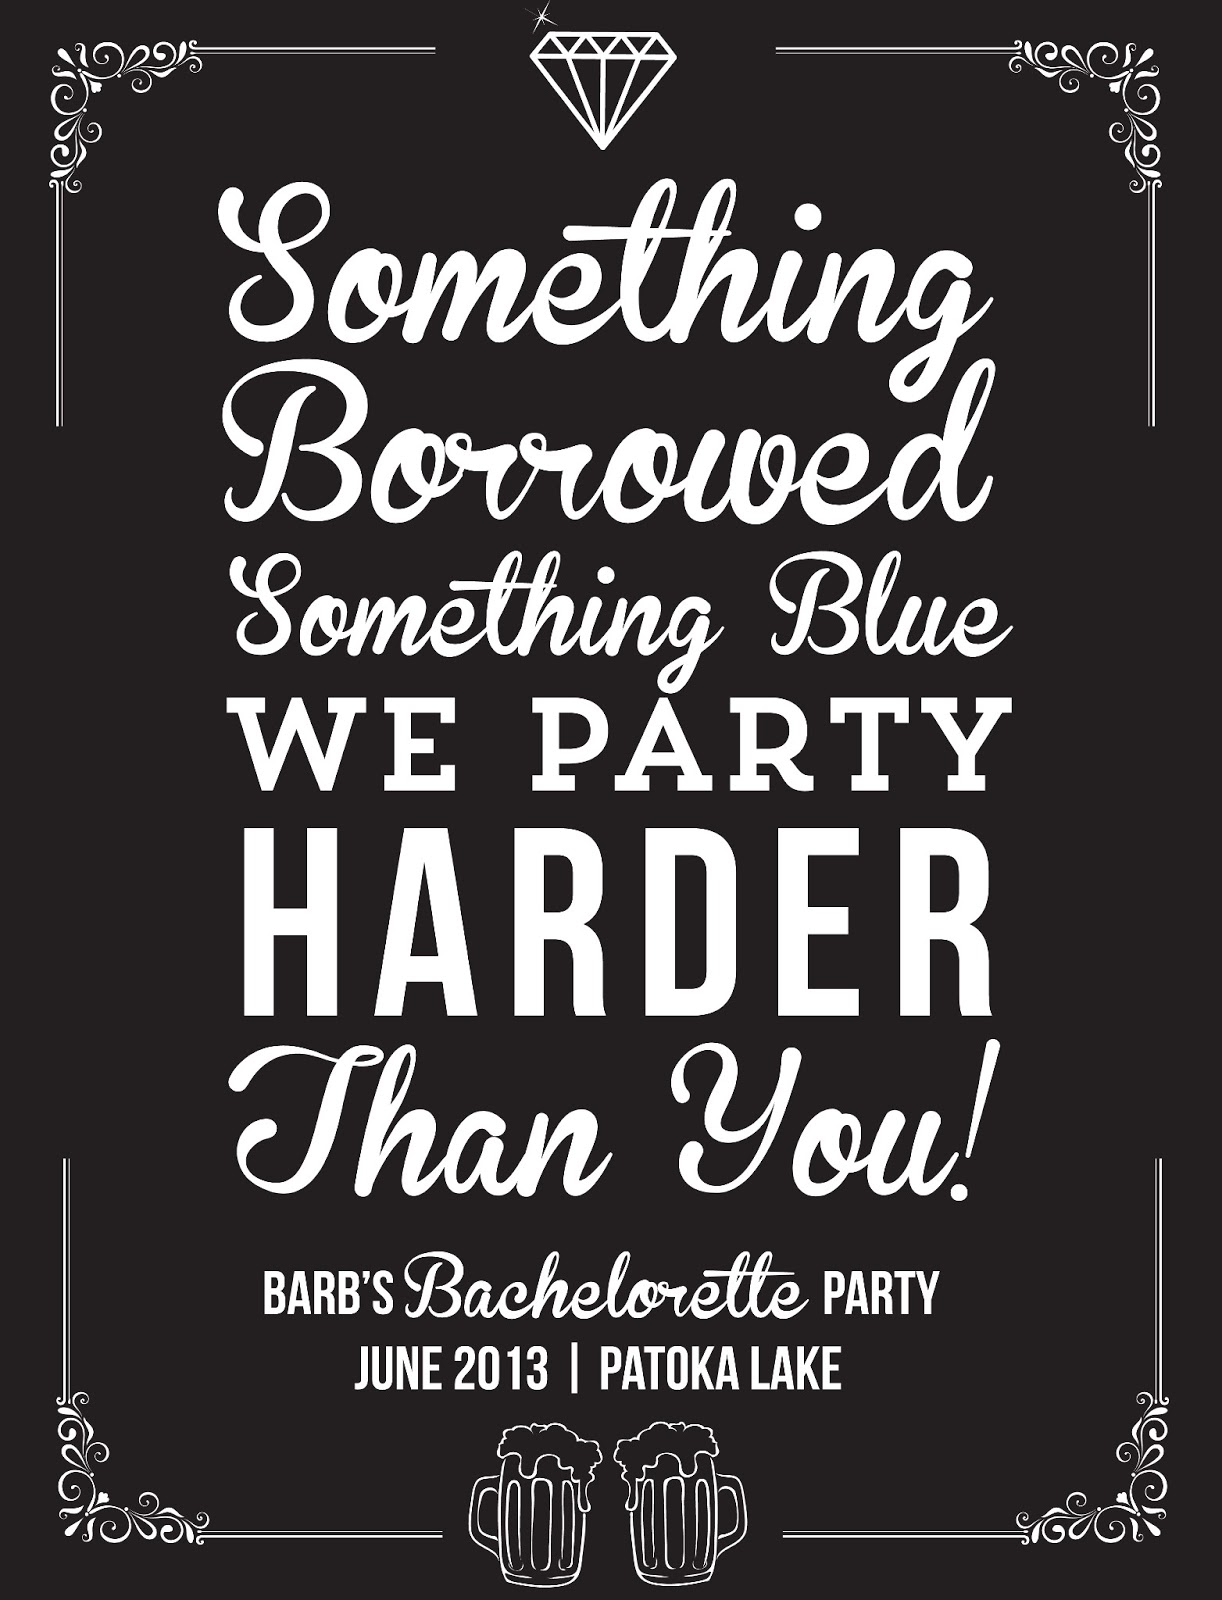 Clever Bachelorette Party Quotes. QuotesGram